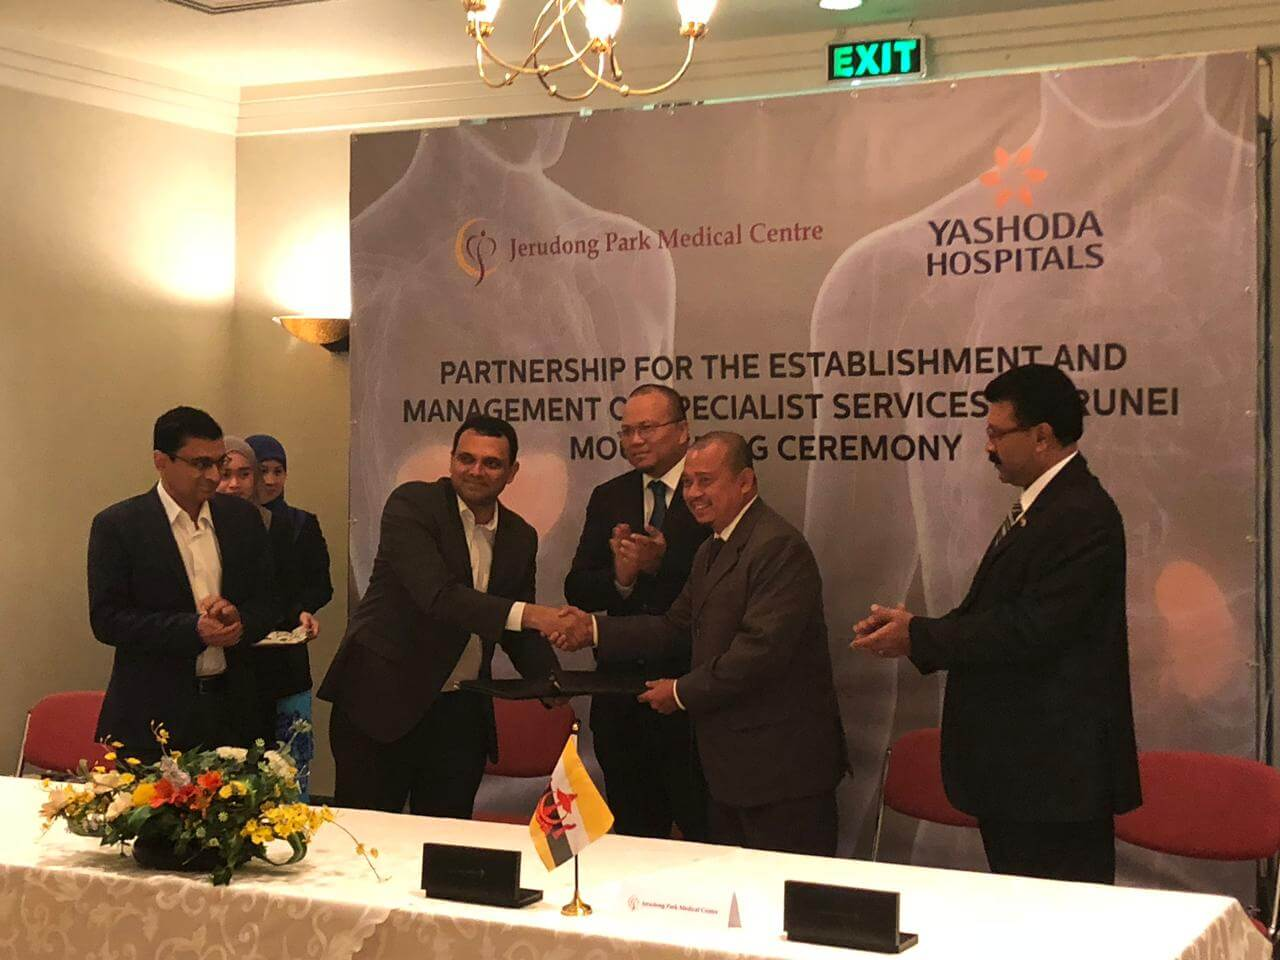 Yashoda Hospitals partners with JPMC, Brunei Darussalam for organ transplant services